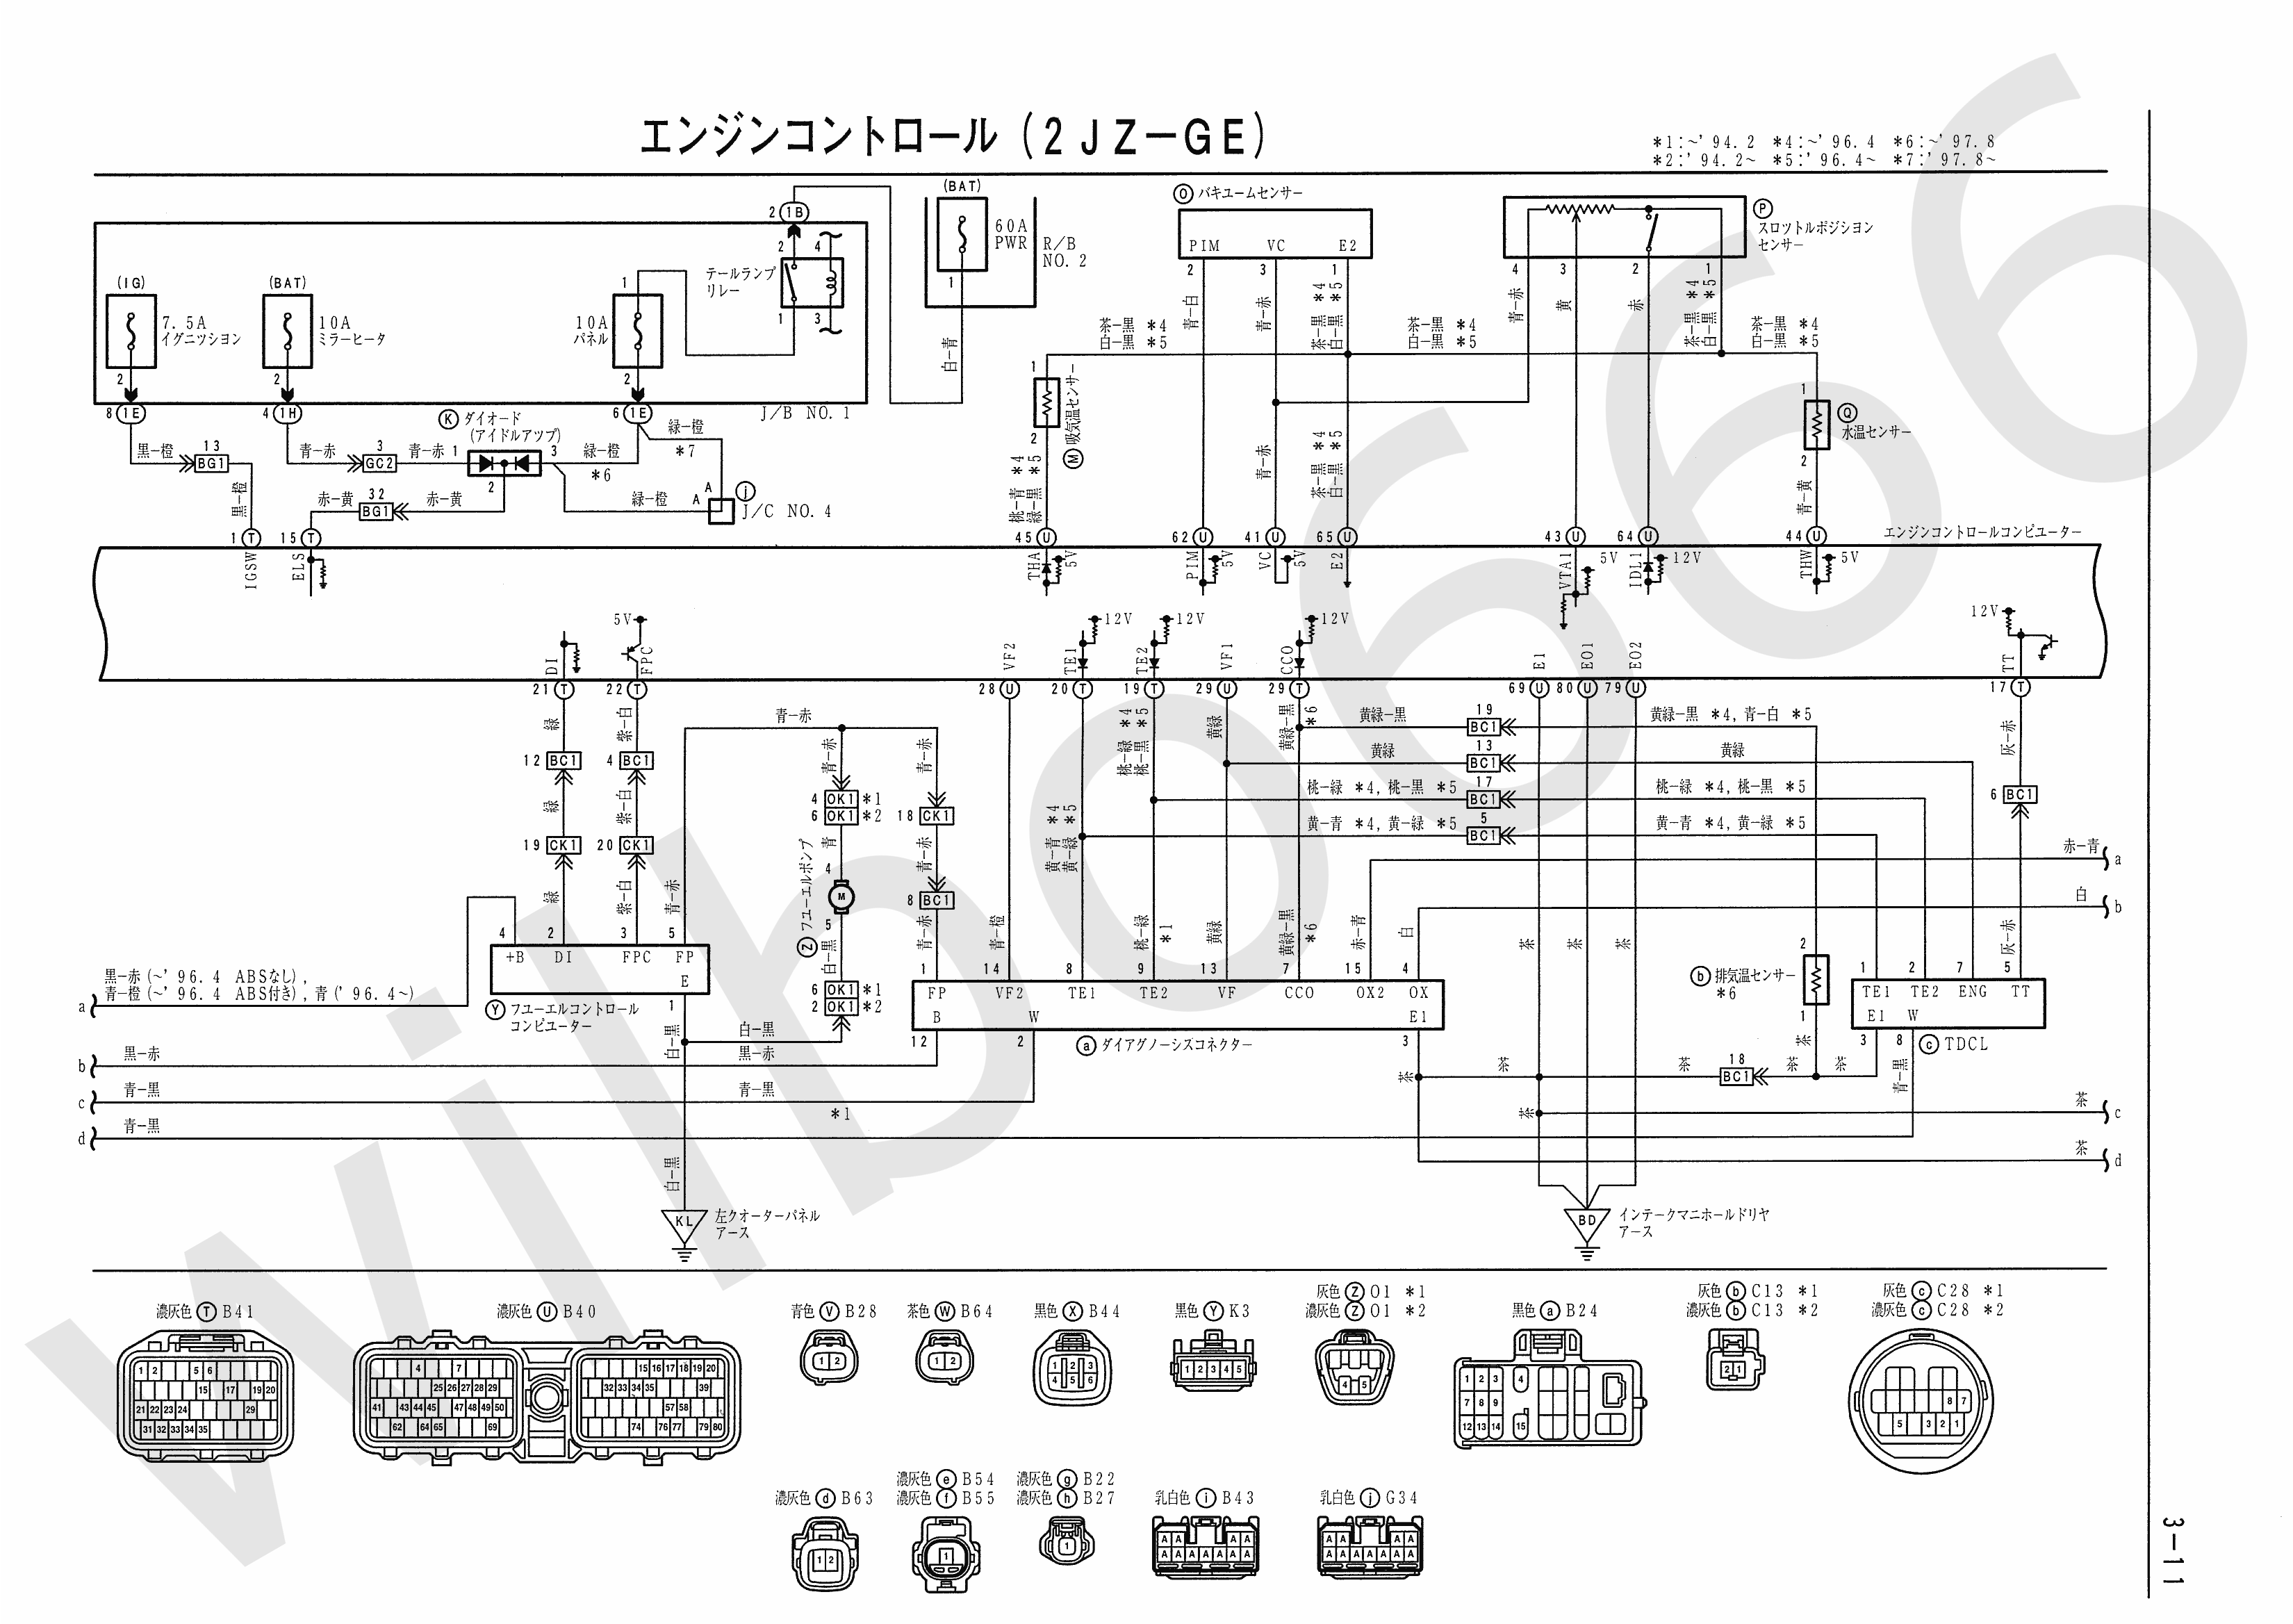 ... JZA80 Electrical Wiring Diagram 6742505 3 11?ssl=1 john deere gt275 wiring  diagram